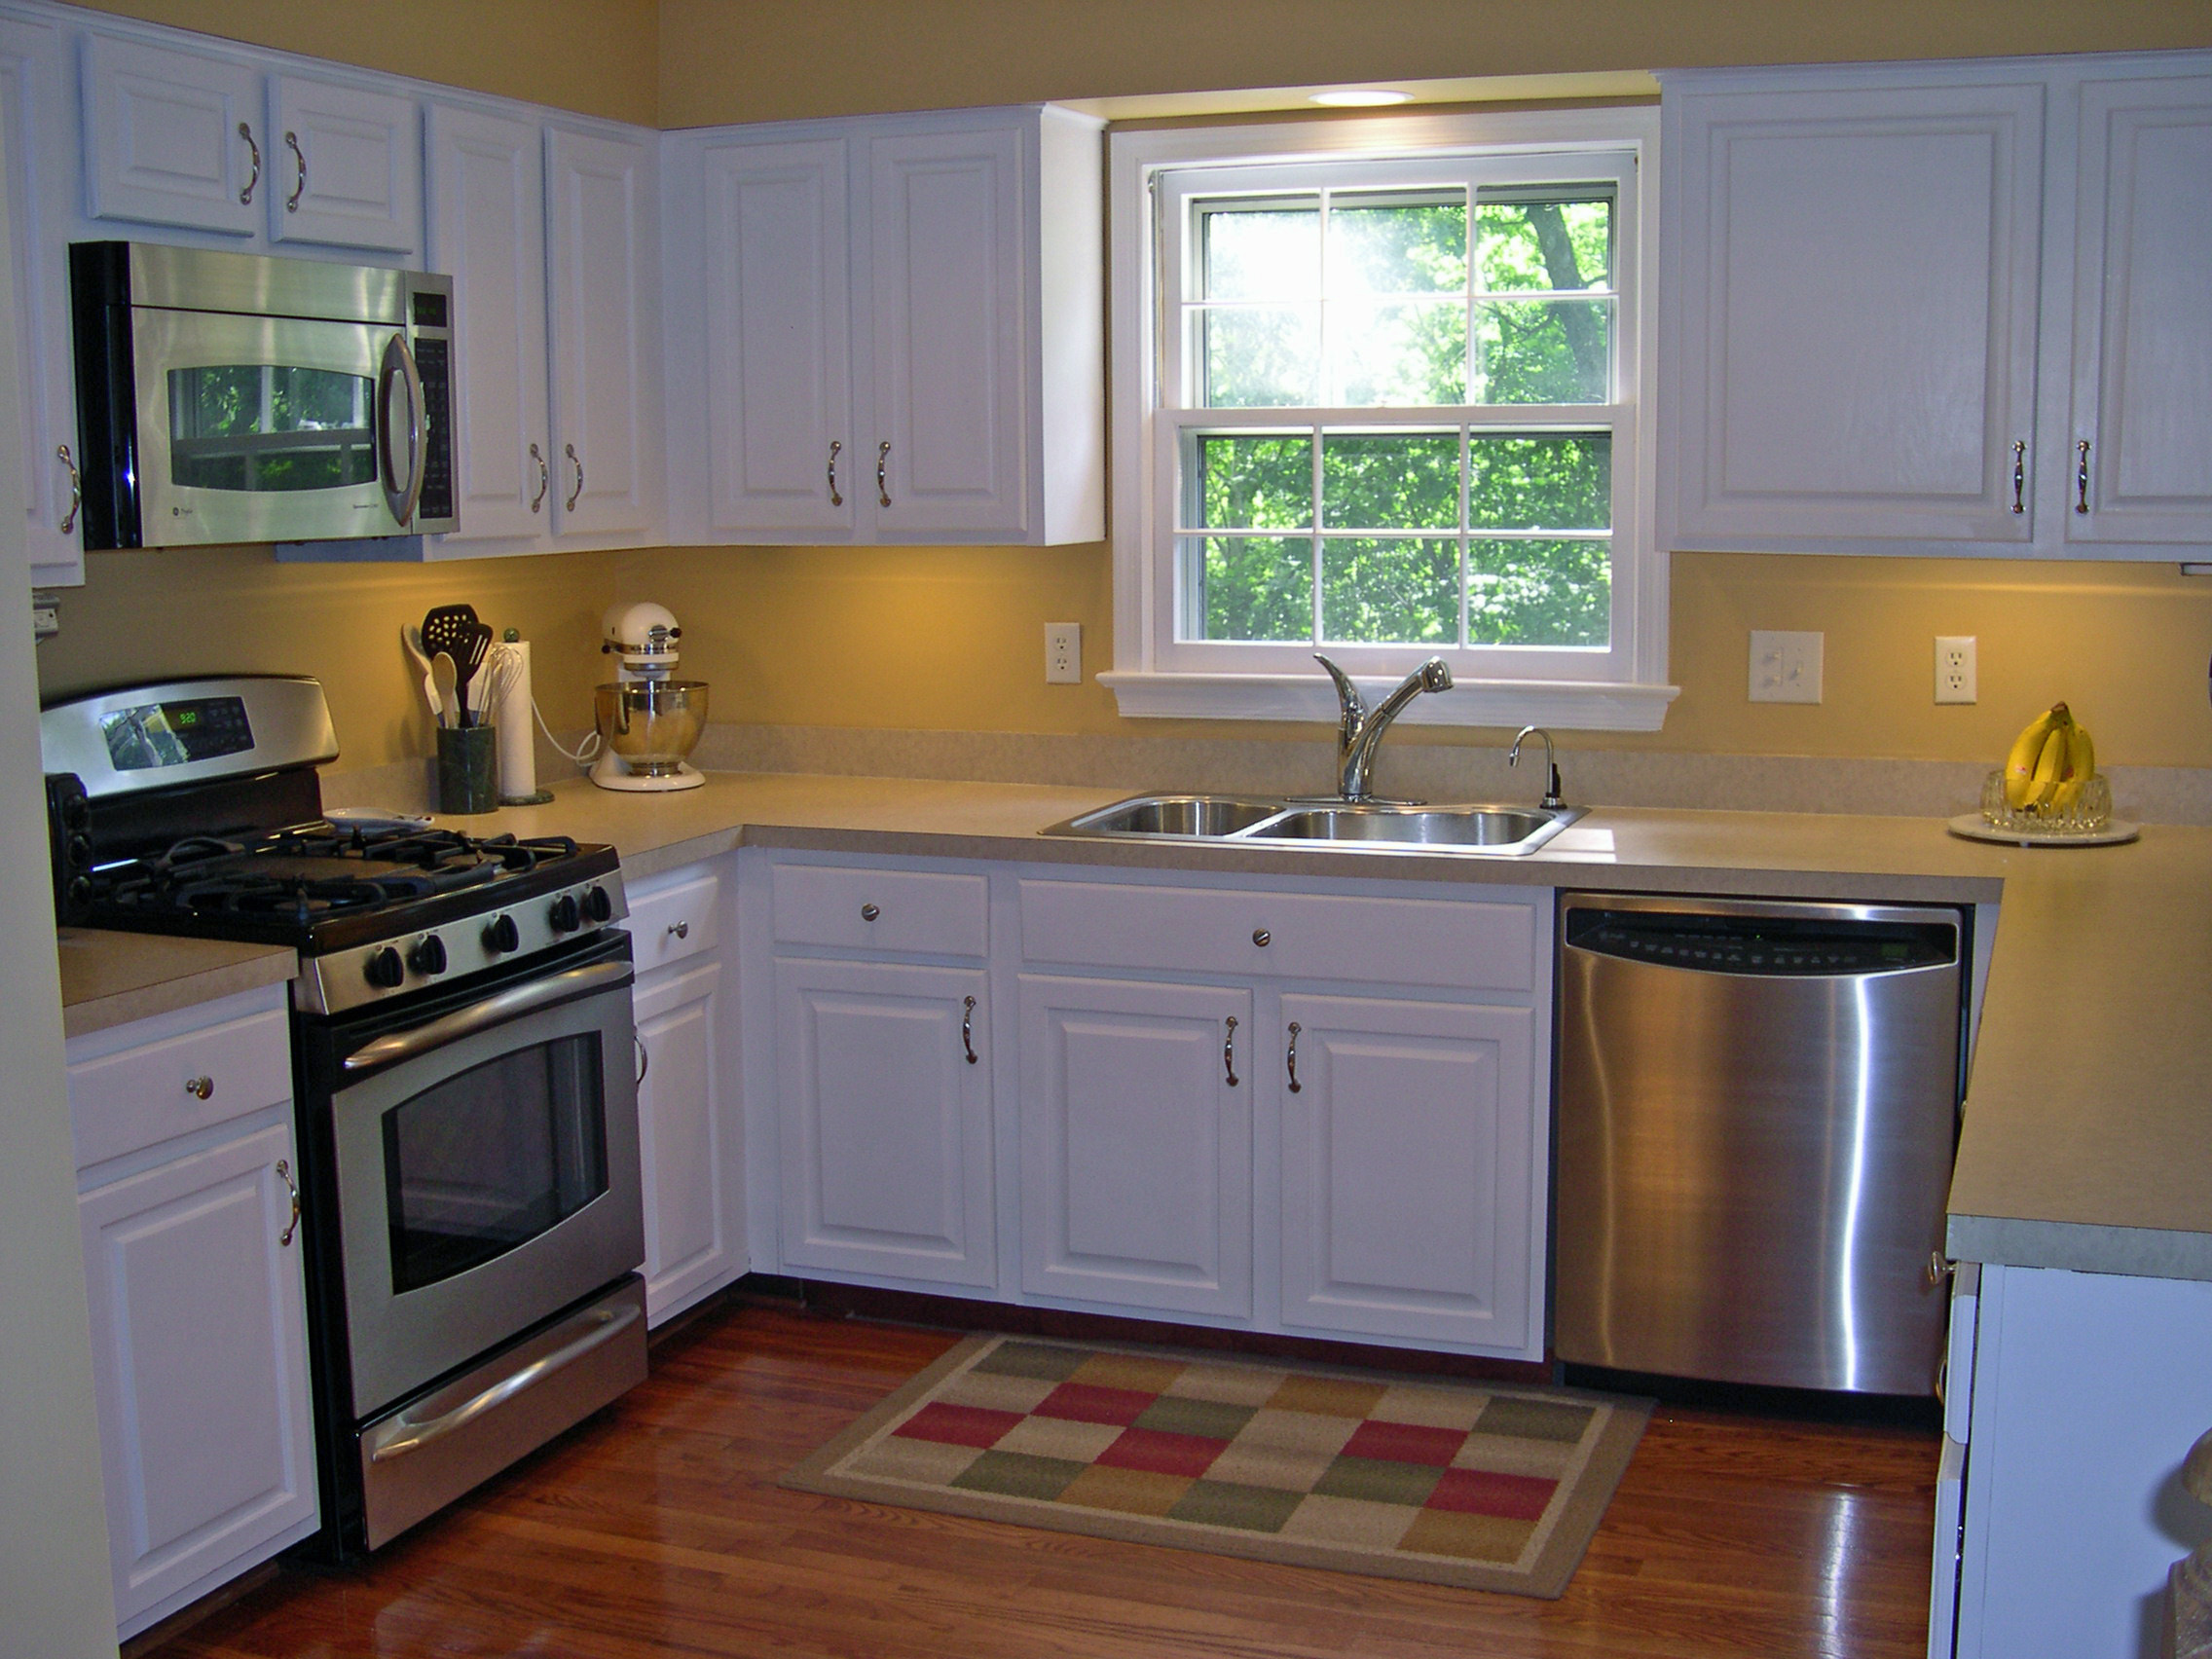 Elegant 50 Thousand Dollar Kitchen Remodel Renovation Cost Julia Chaplin kitchen renovations on a small budget